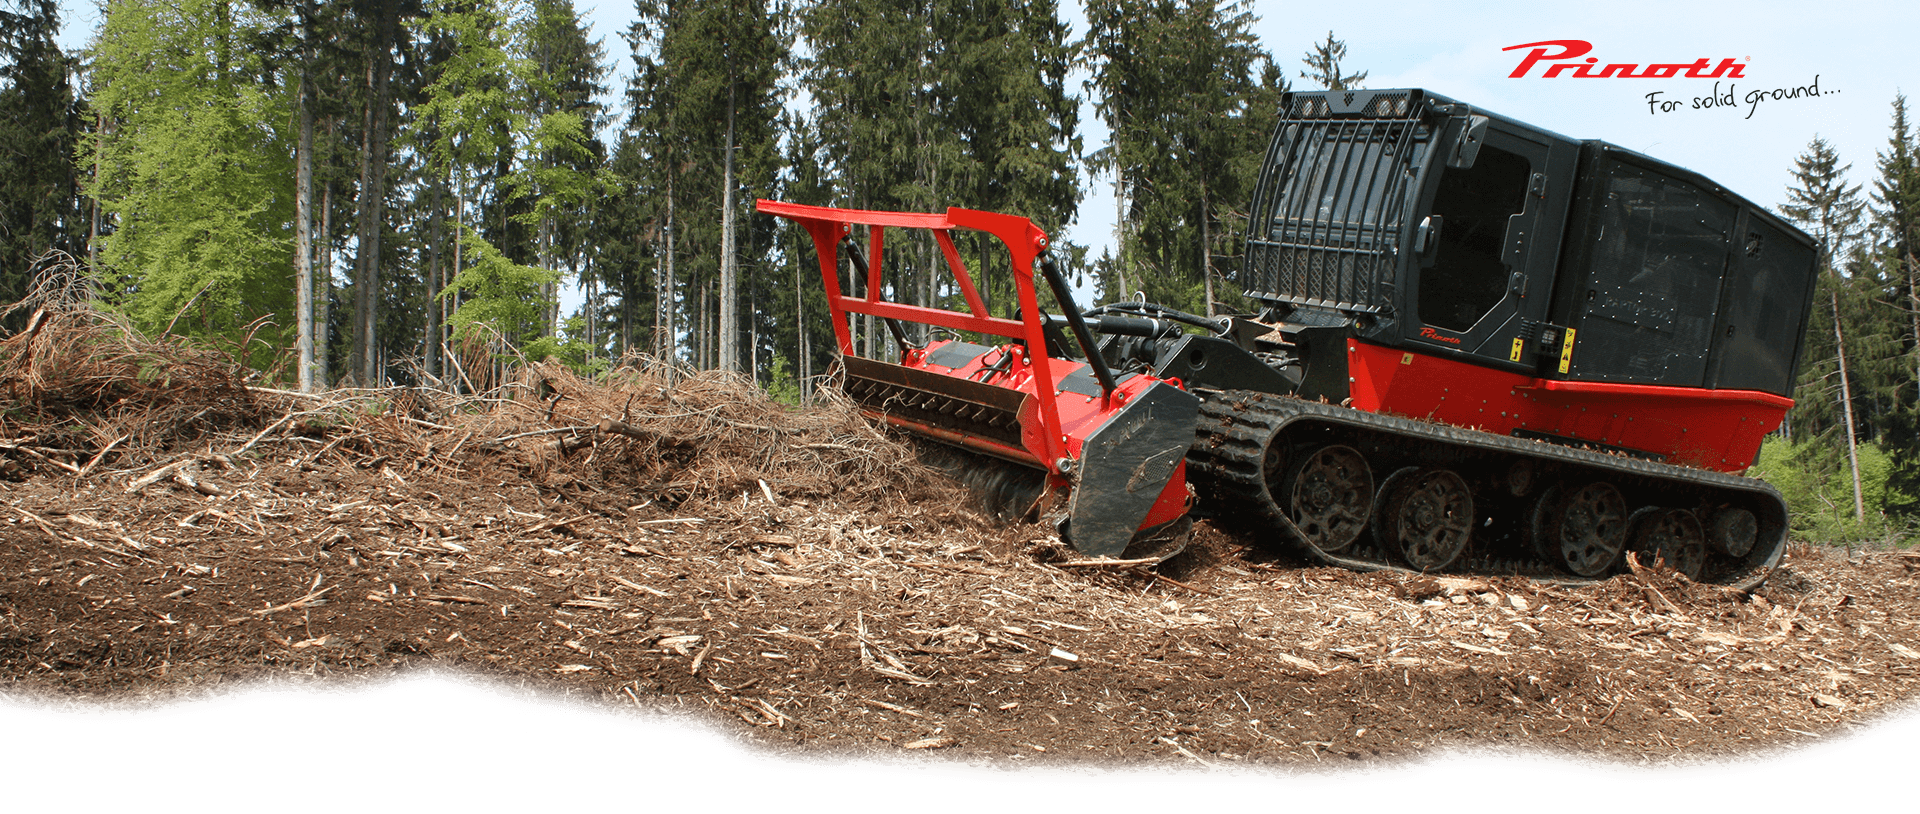 Rowmec Prinoth Products for Sale